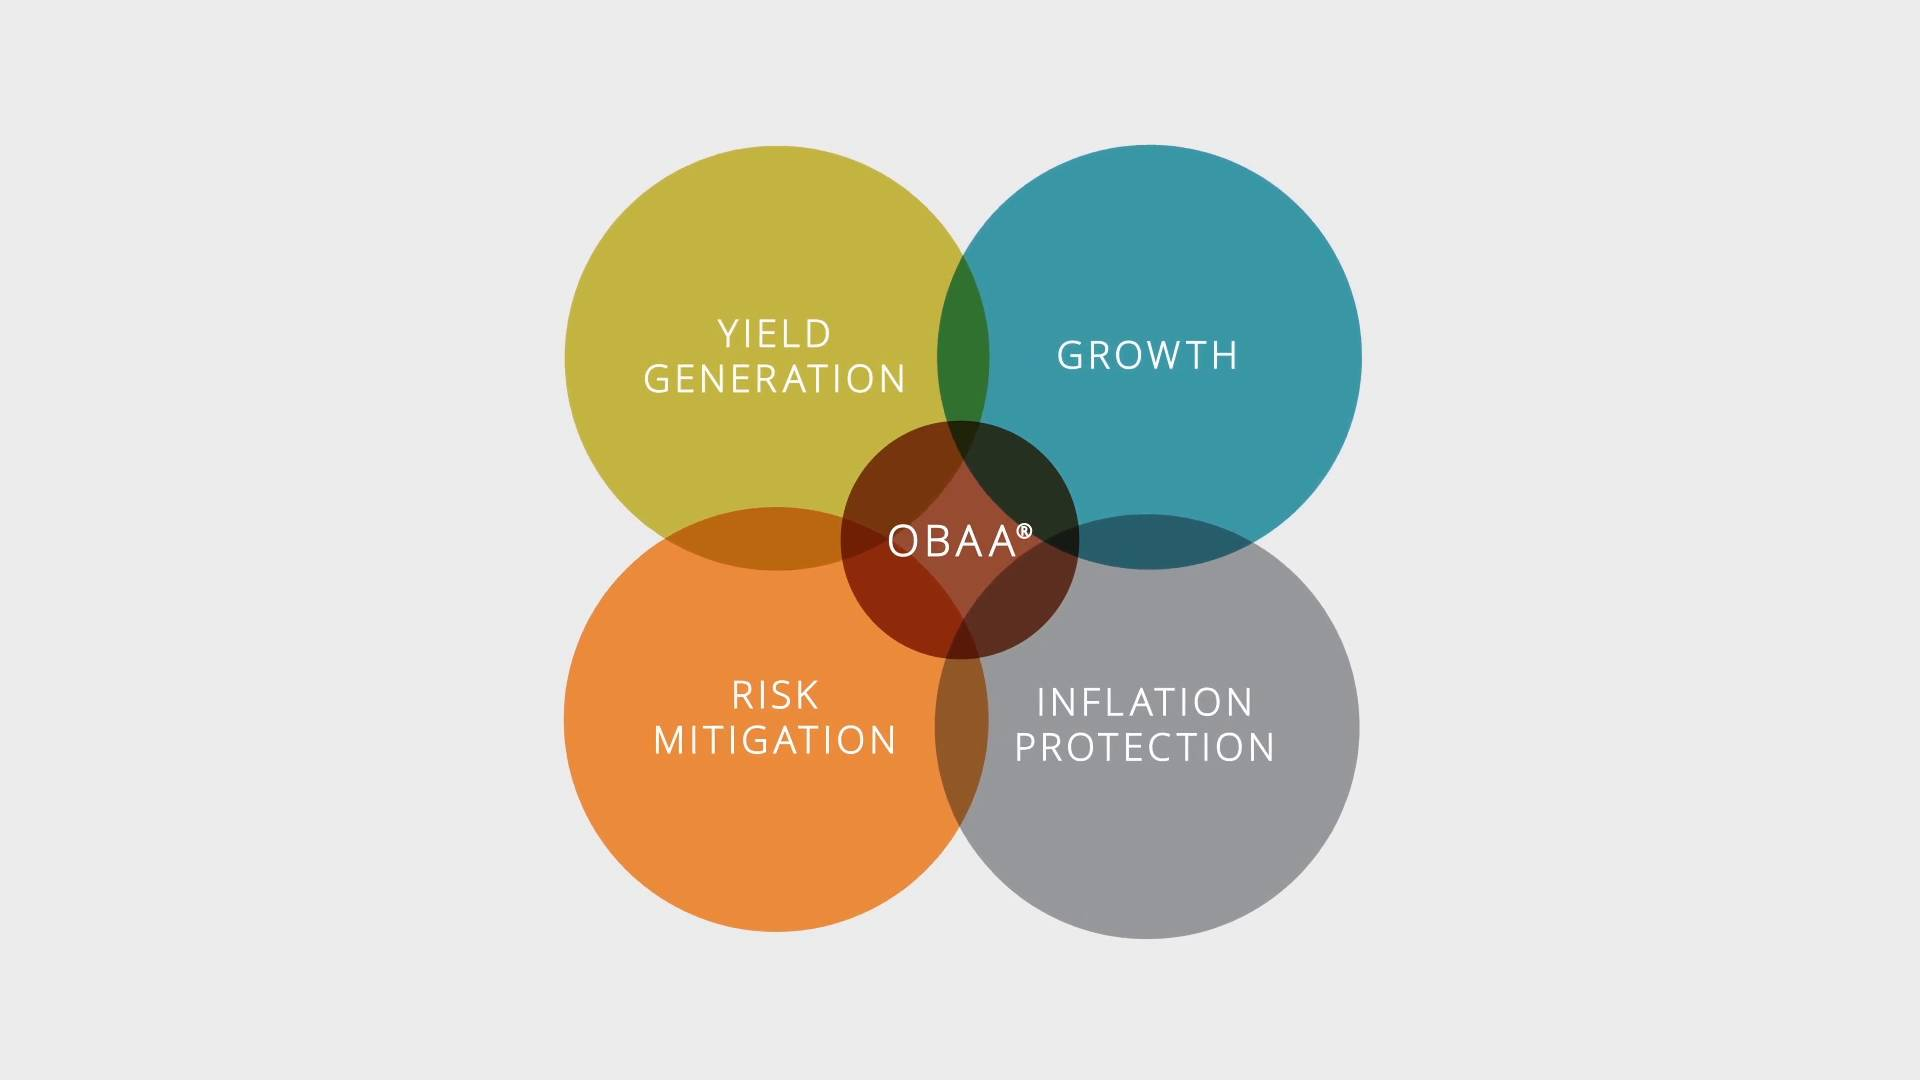 Objectives-Based Asset Allocation (OBAA)